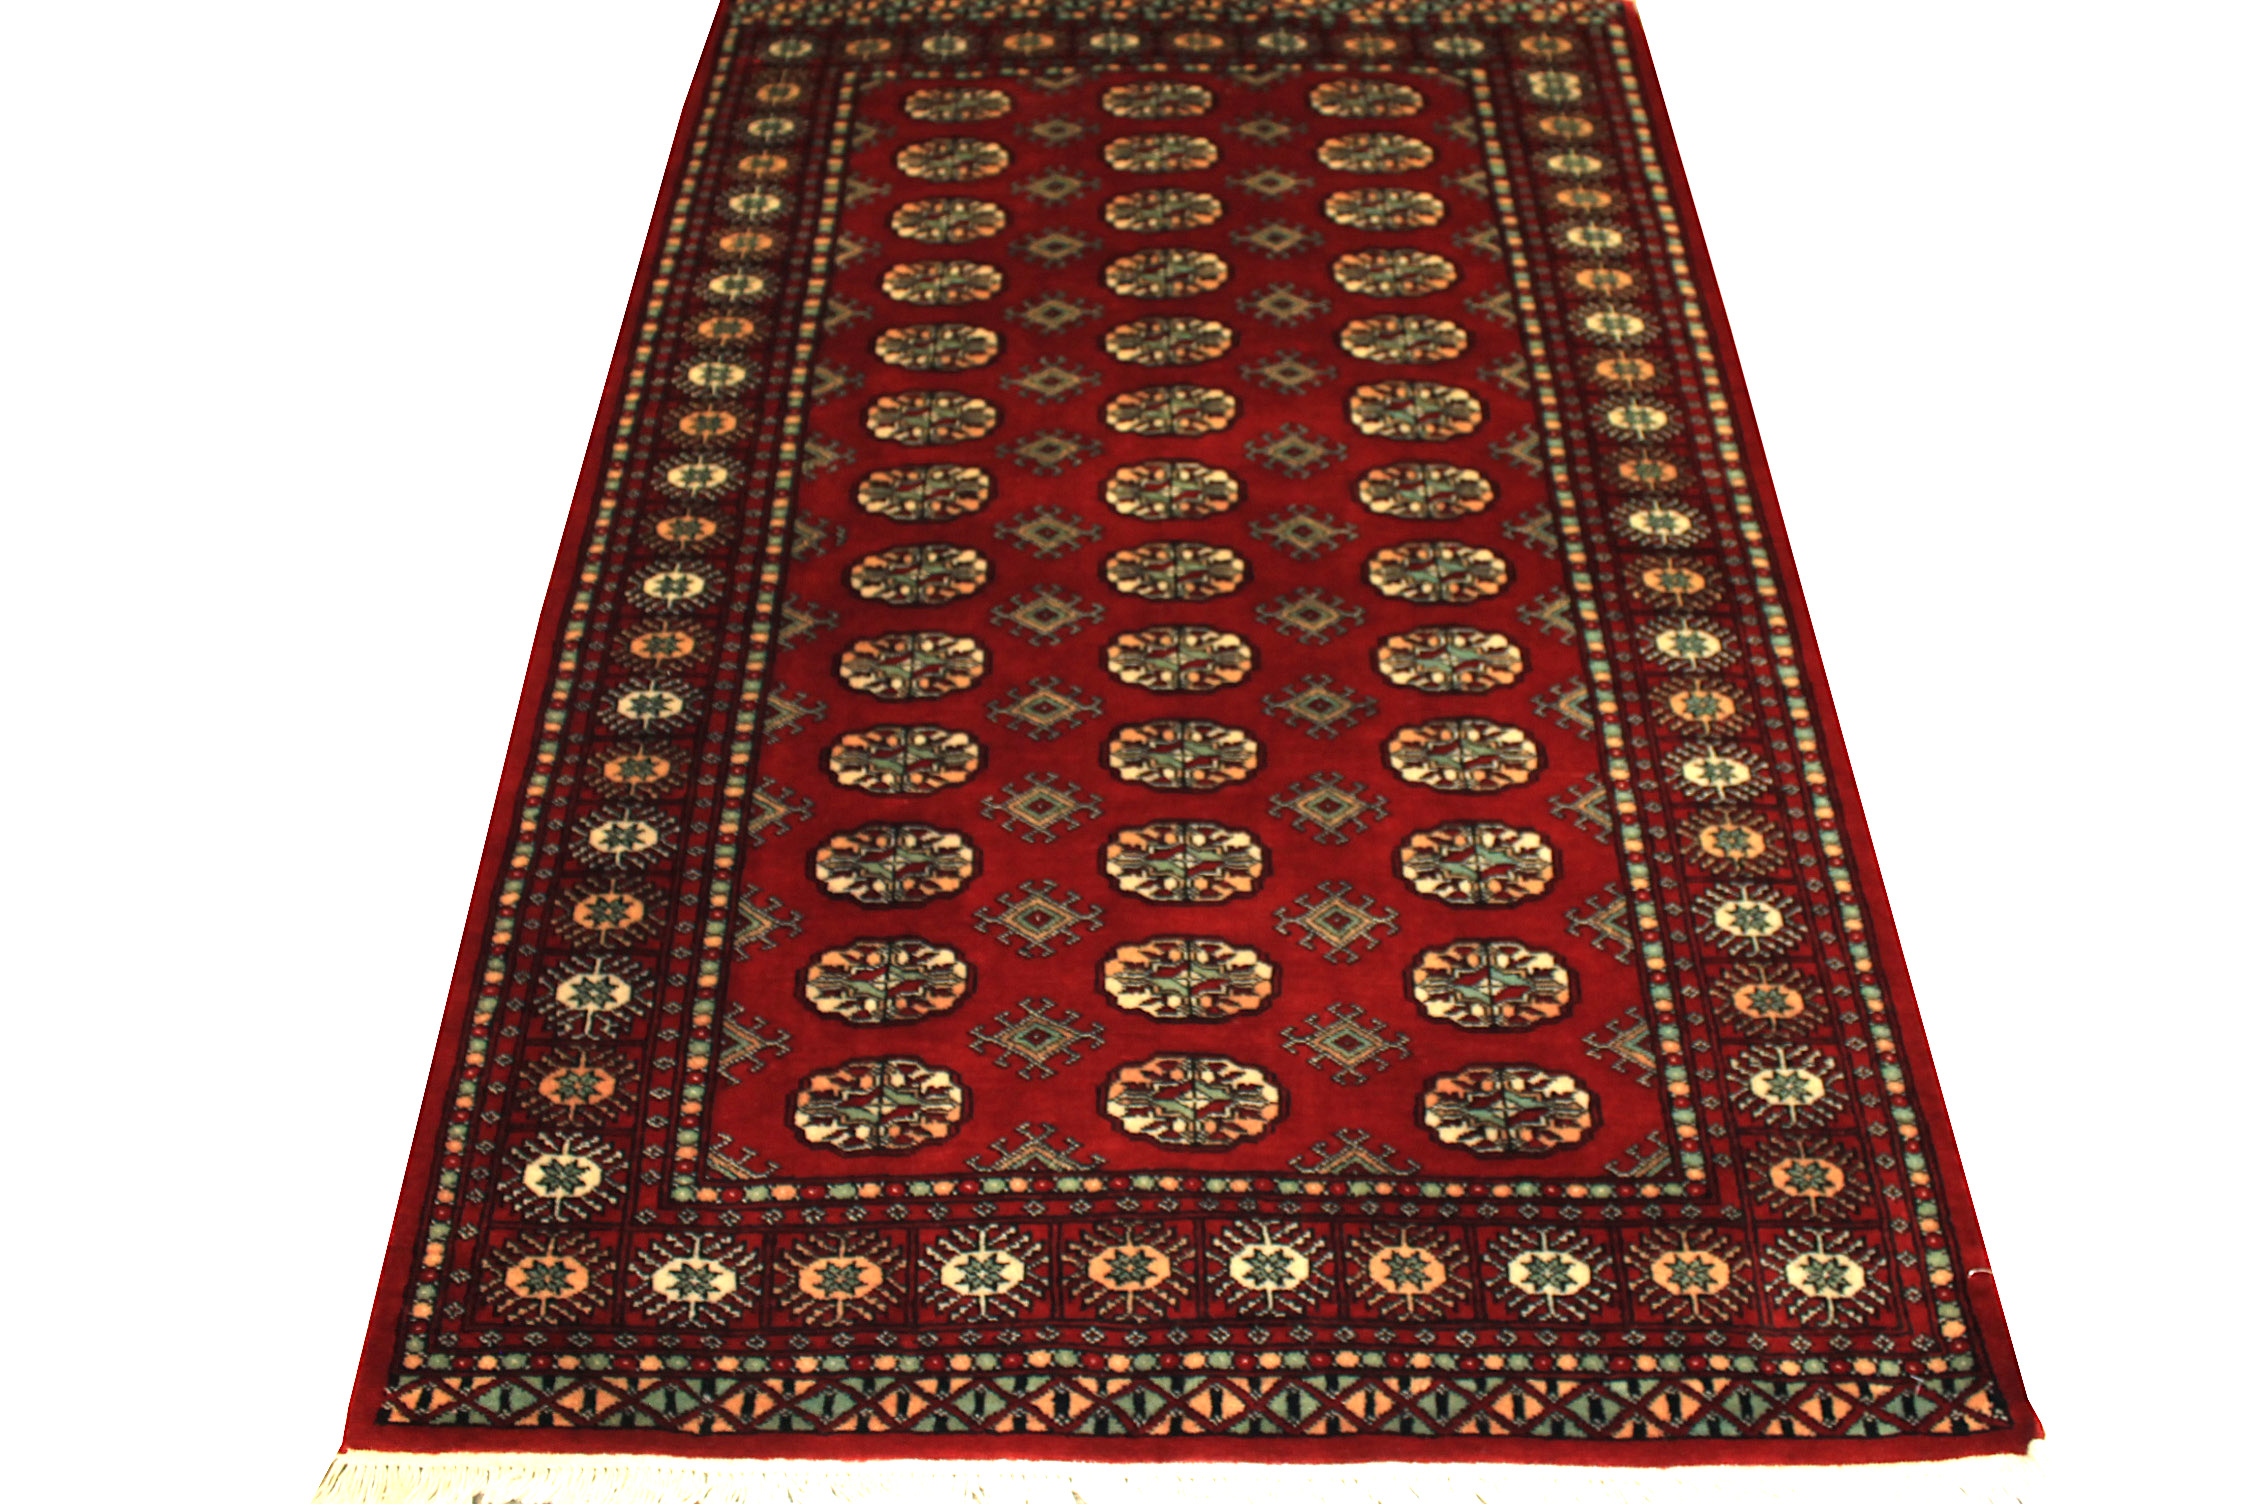 4x6 Bokhara Hand Knotted Wool Area Rug - MR021505